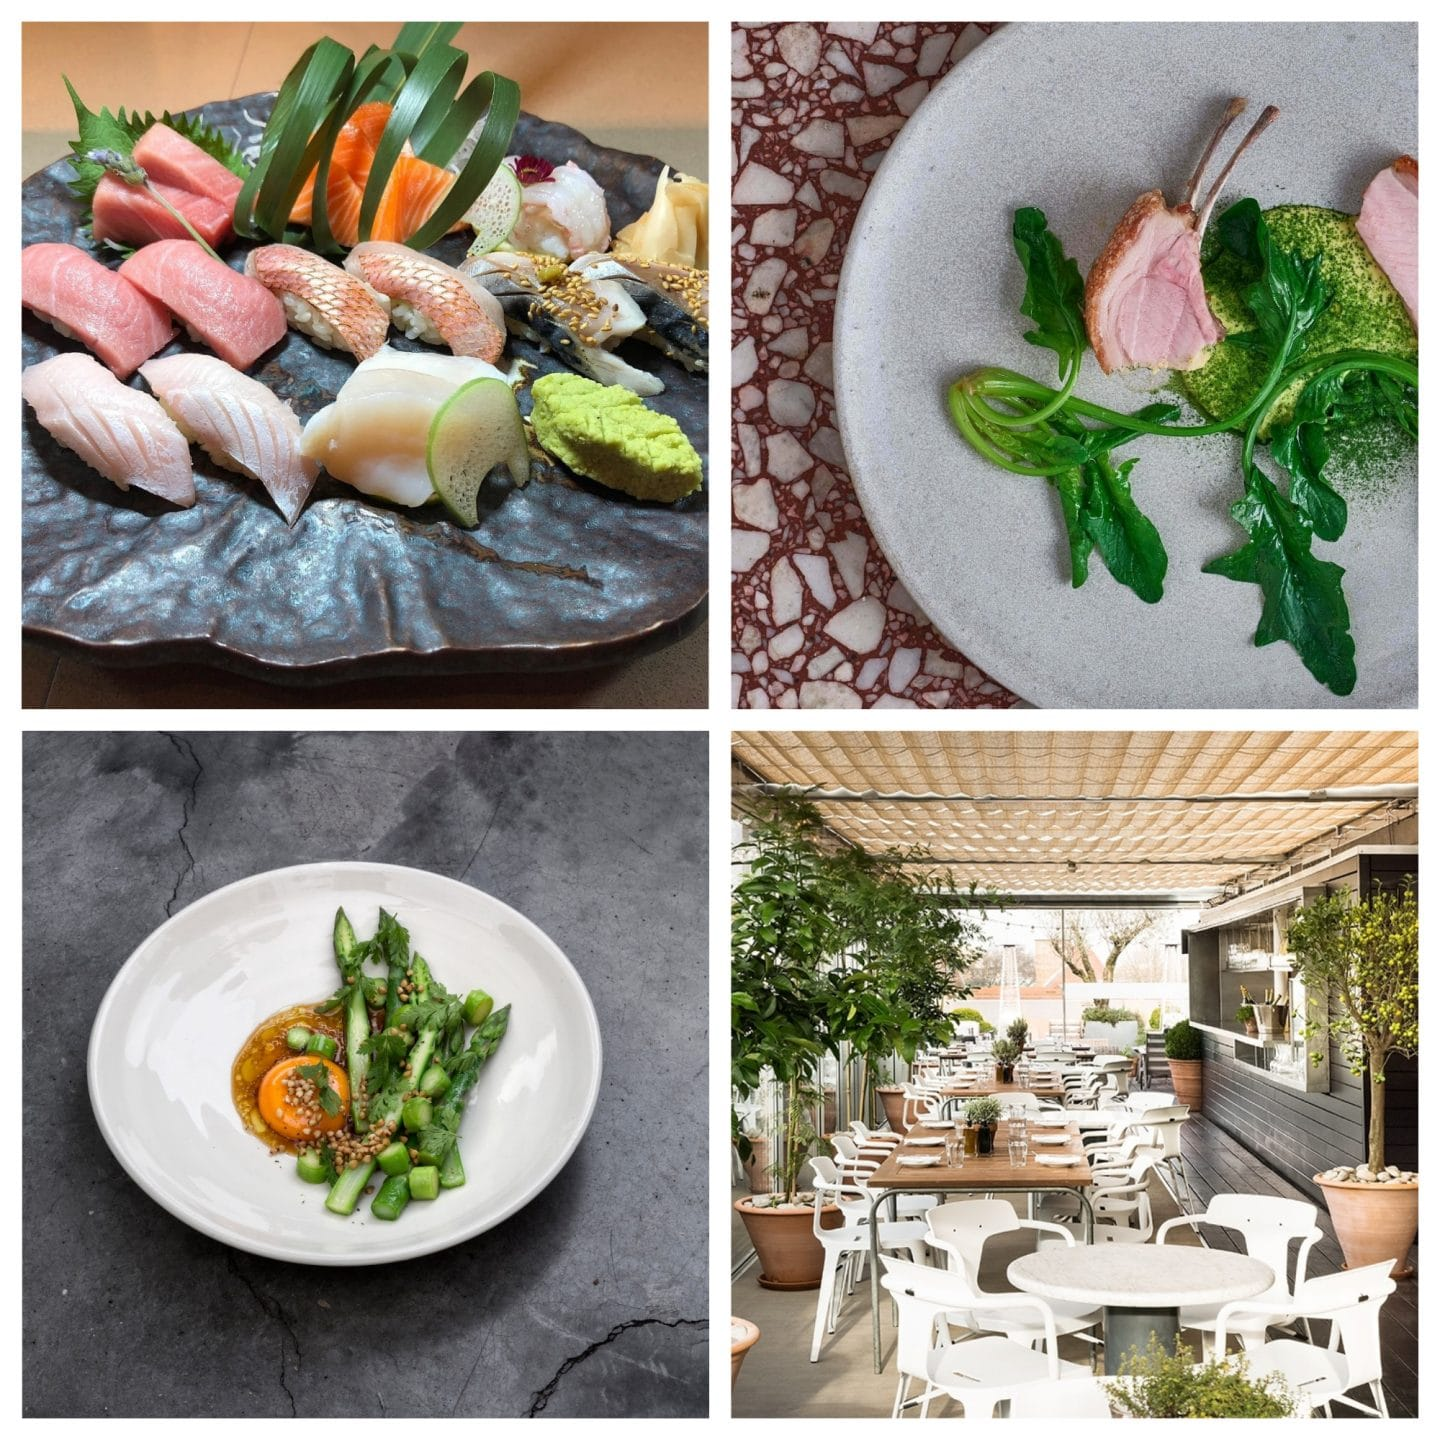 Clockwise from top left: Nobu Shoreditch, The Clove Club, Boundary Rooftop, Lyle's